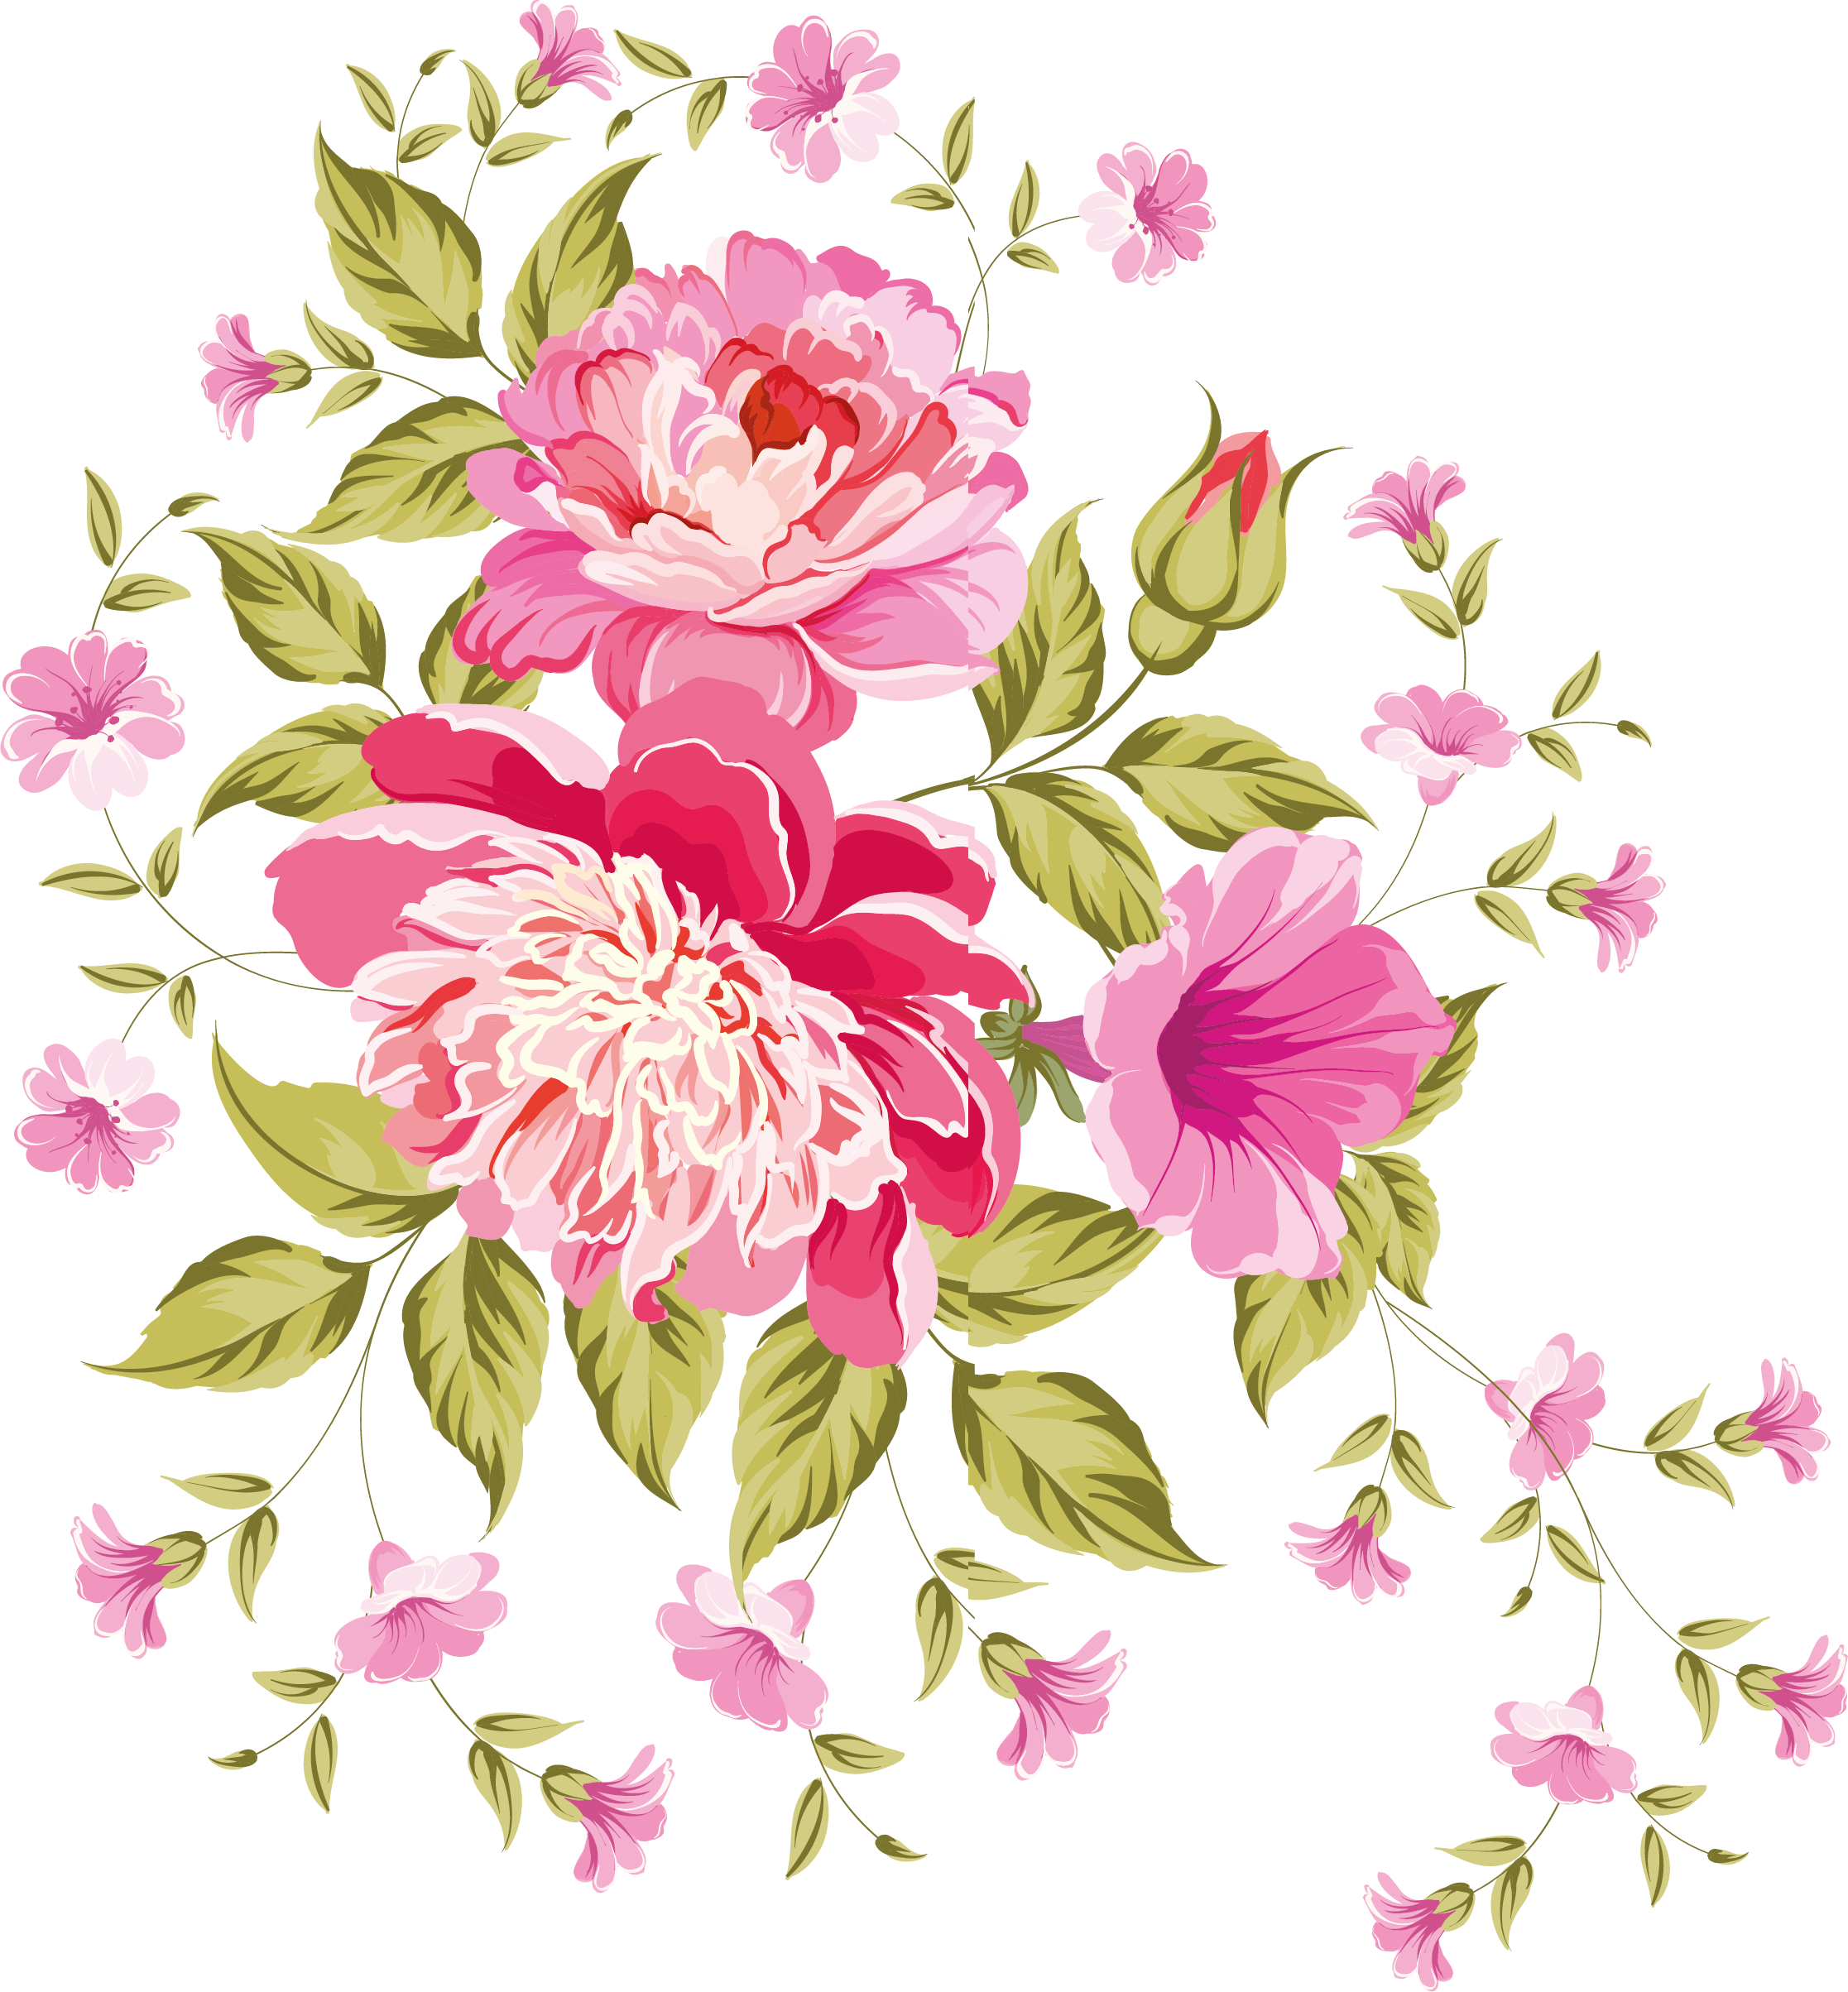 Drawing wallpapers flower. My design beautiful flowers